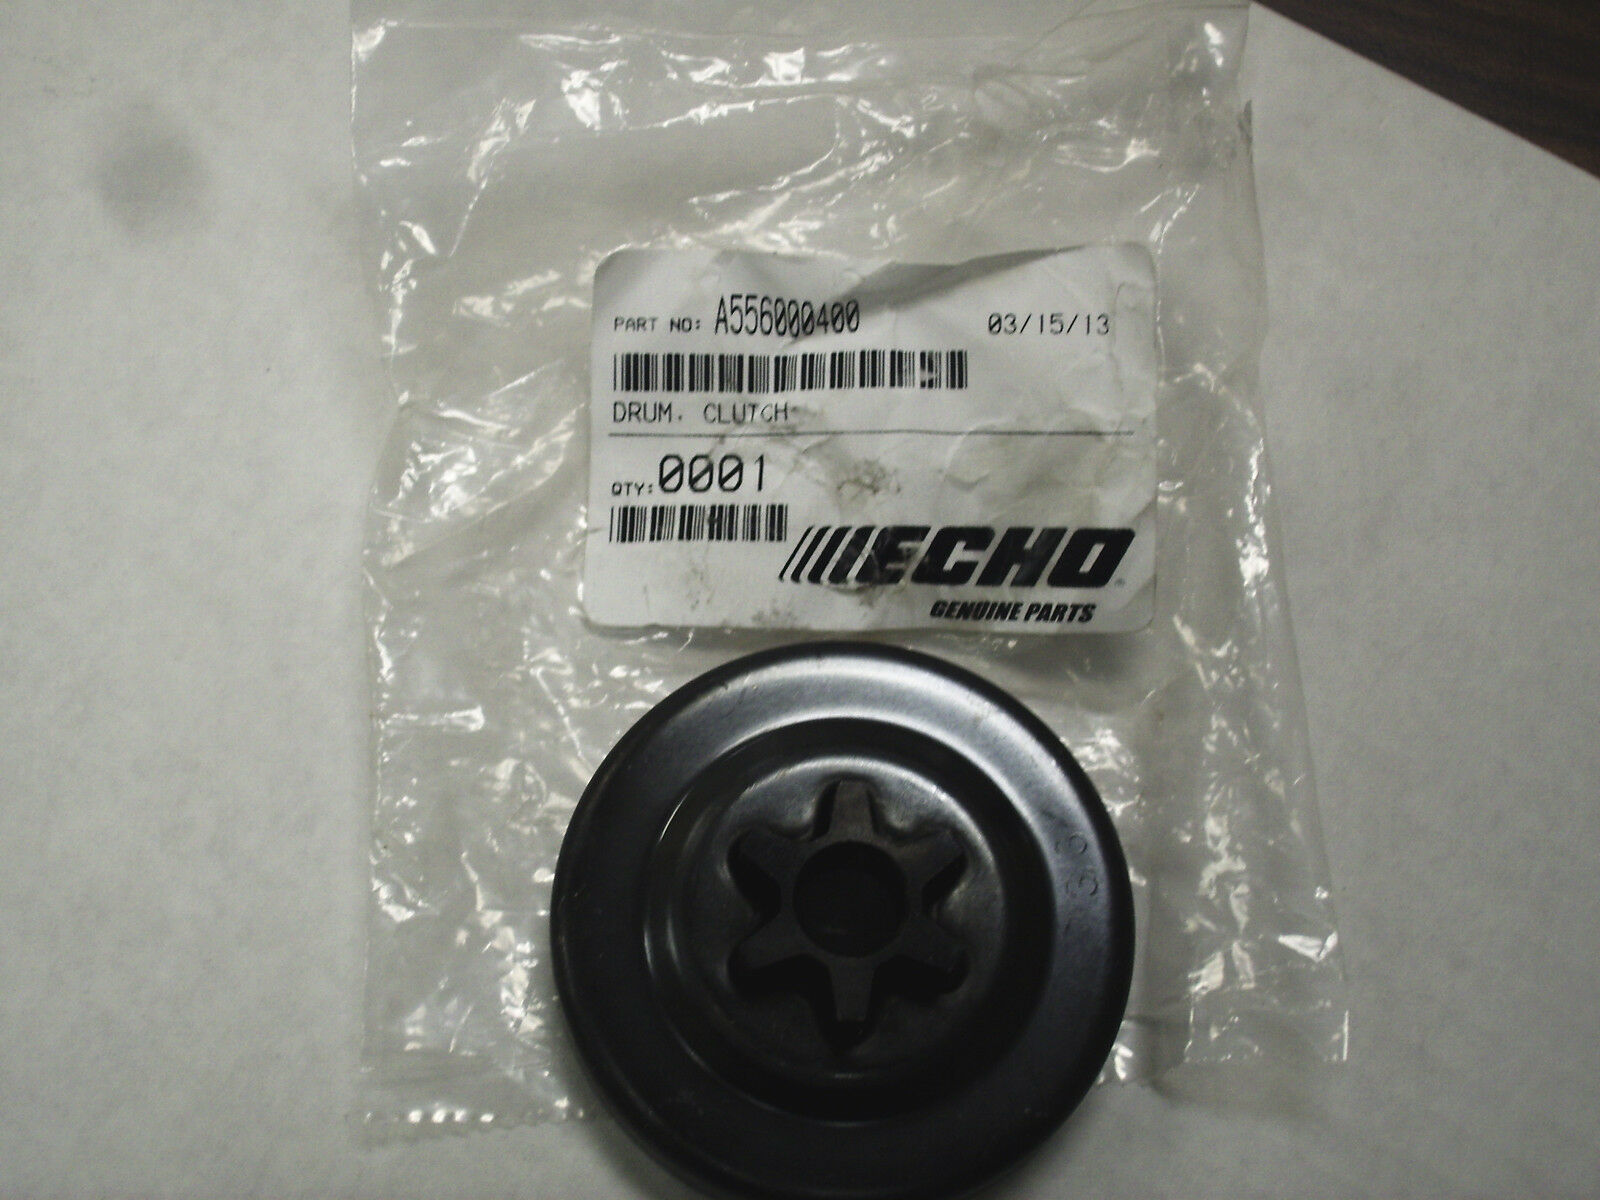 Primary image for A556000400 Genuine Echo Clutch Drum Chain Sprocket CS-370 CS-400